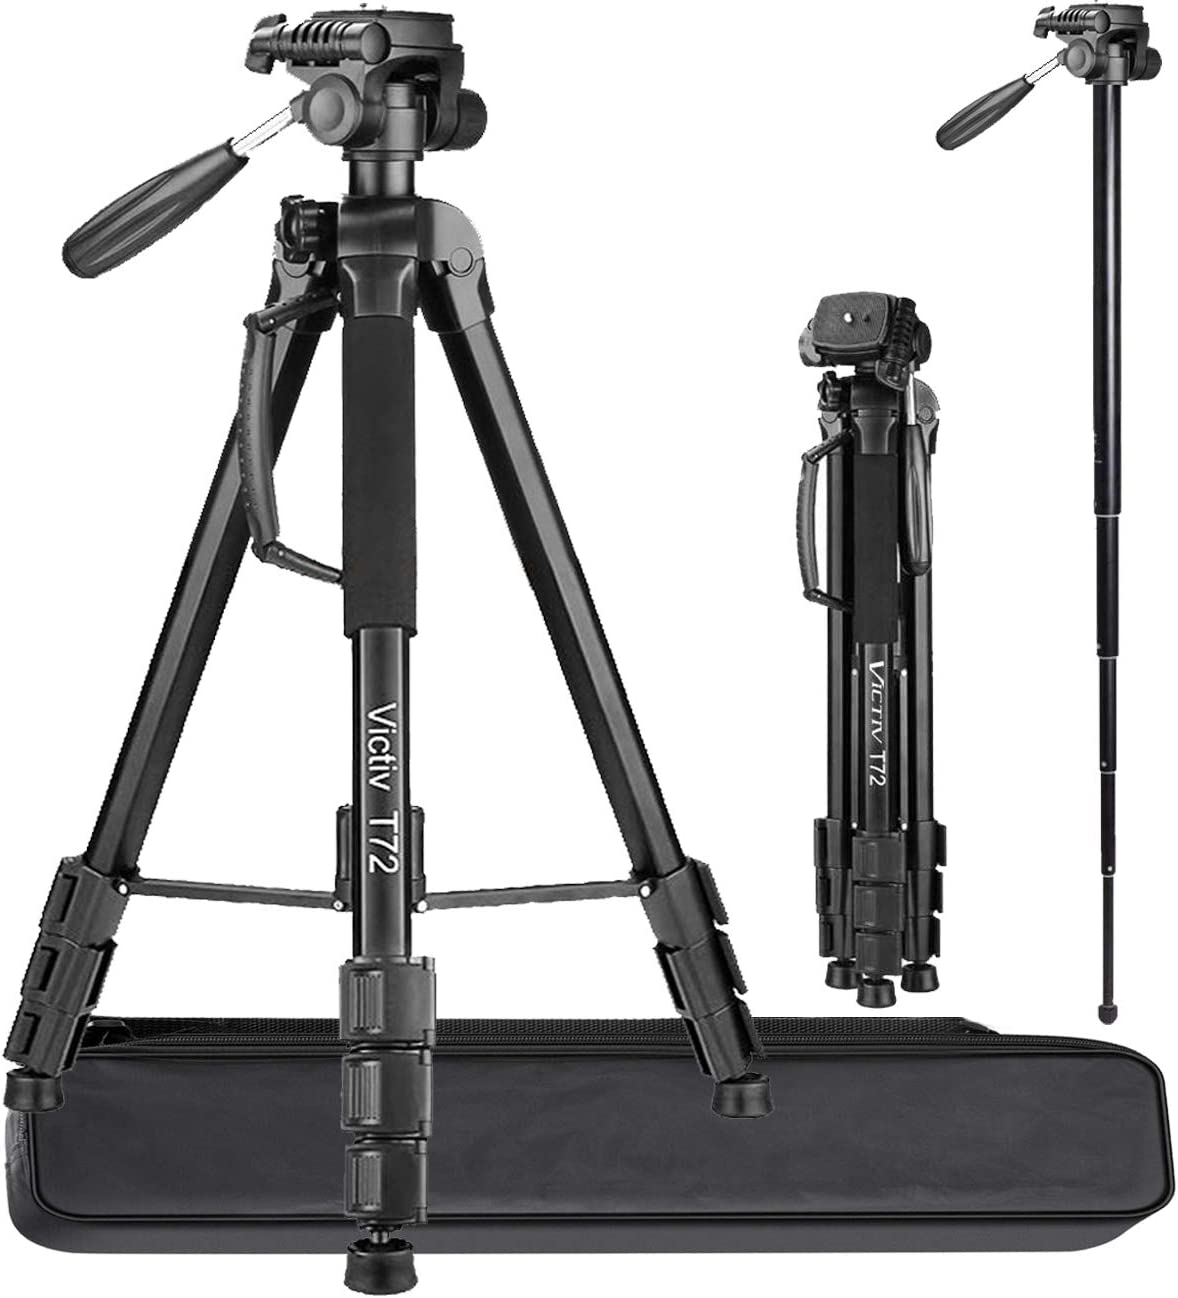 Victiv Aluminum 72 inches Camera Tripod, 2-in-1 Tripod Monopod for DSLR and Smartphone with 3-Way Swivel Pan Head and 9lbs Load for Travel and Work - Black